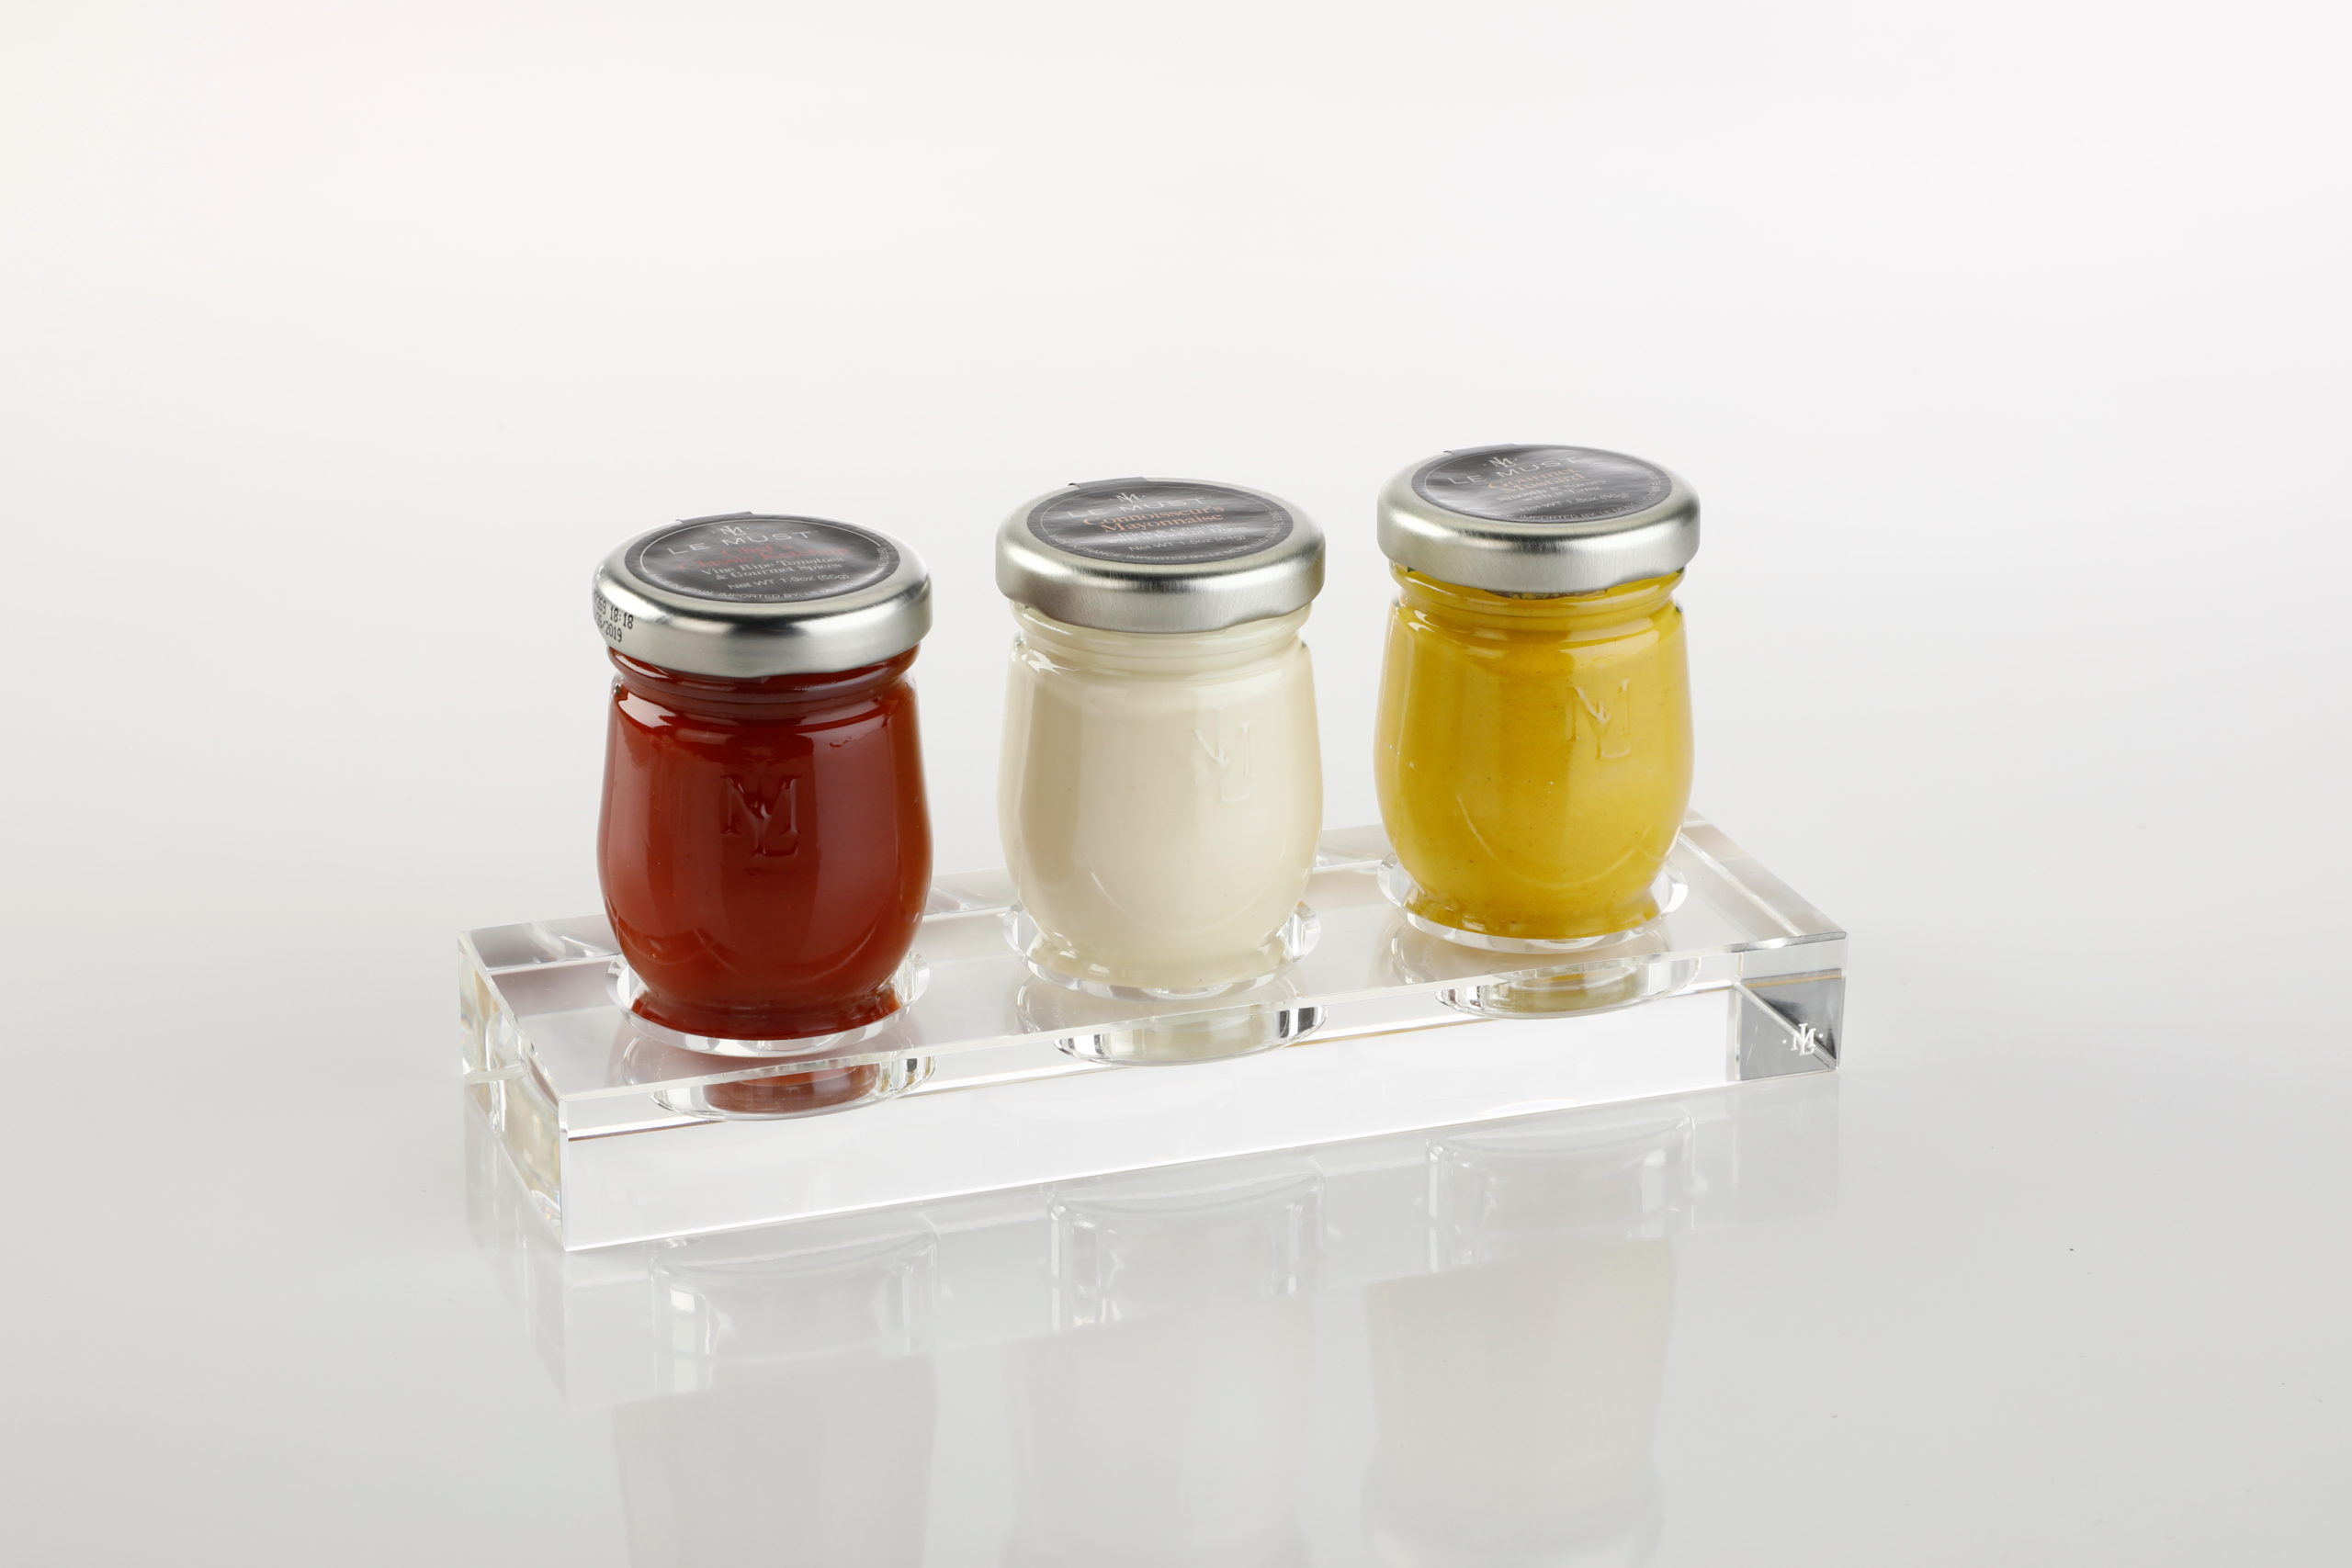 lemust Room service 3 condiments cristal display